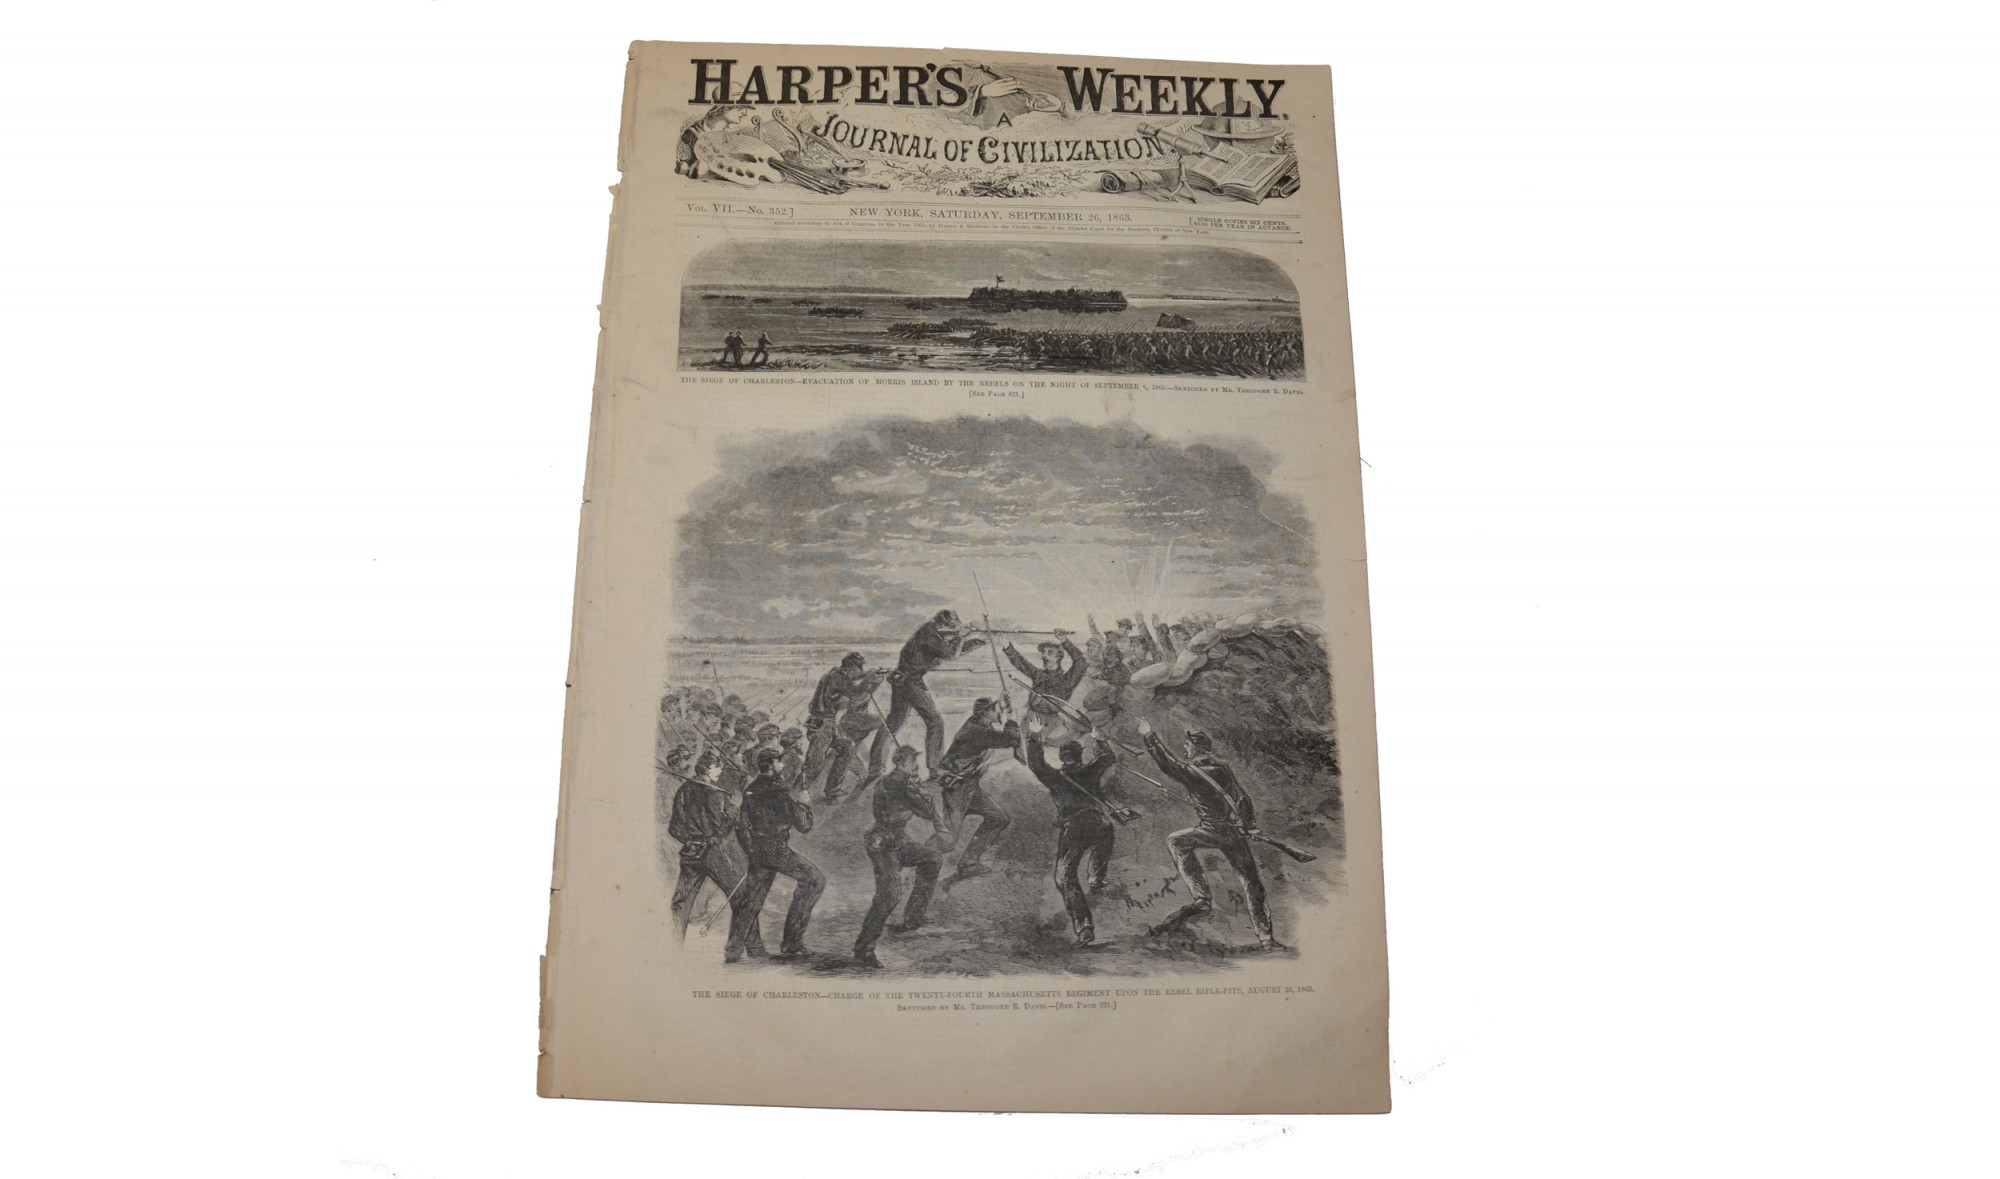 HARPER'S WEEKLY, NEW YORK, SEPTEMBER 26, 1863 – SEIGE OF CHARLESTON / BATTERY WAGNER